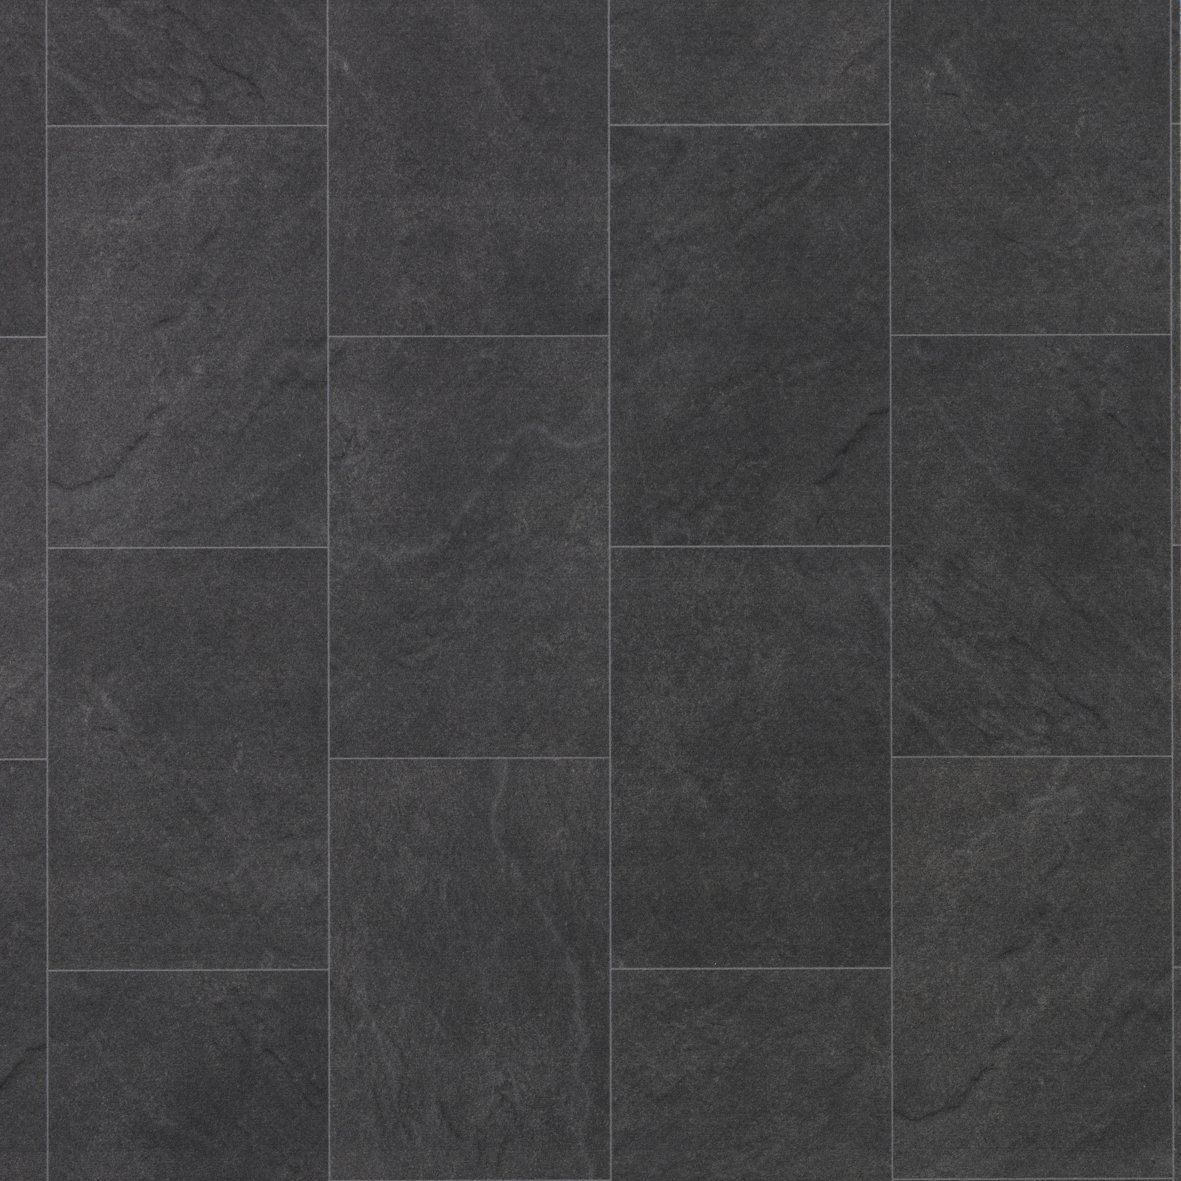 Black Slate Flooring: Quality Flotex - Buy Online, Or Visit Our Store In…